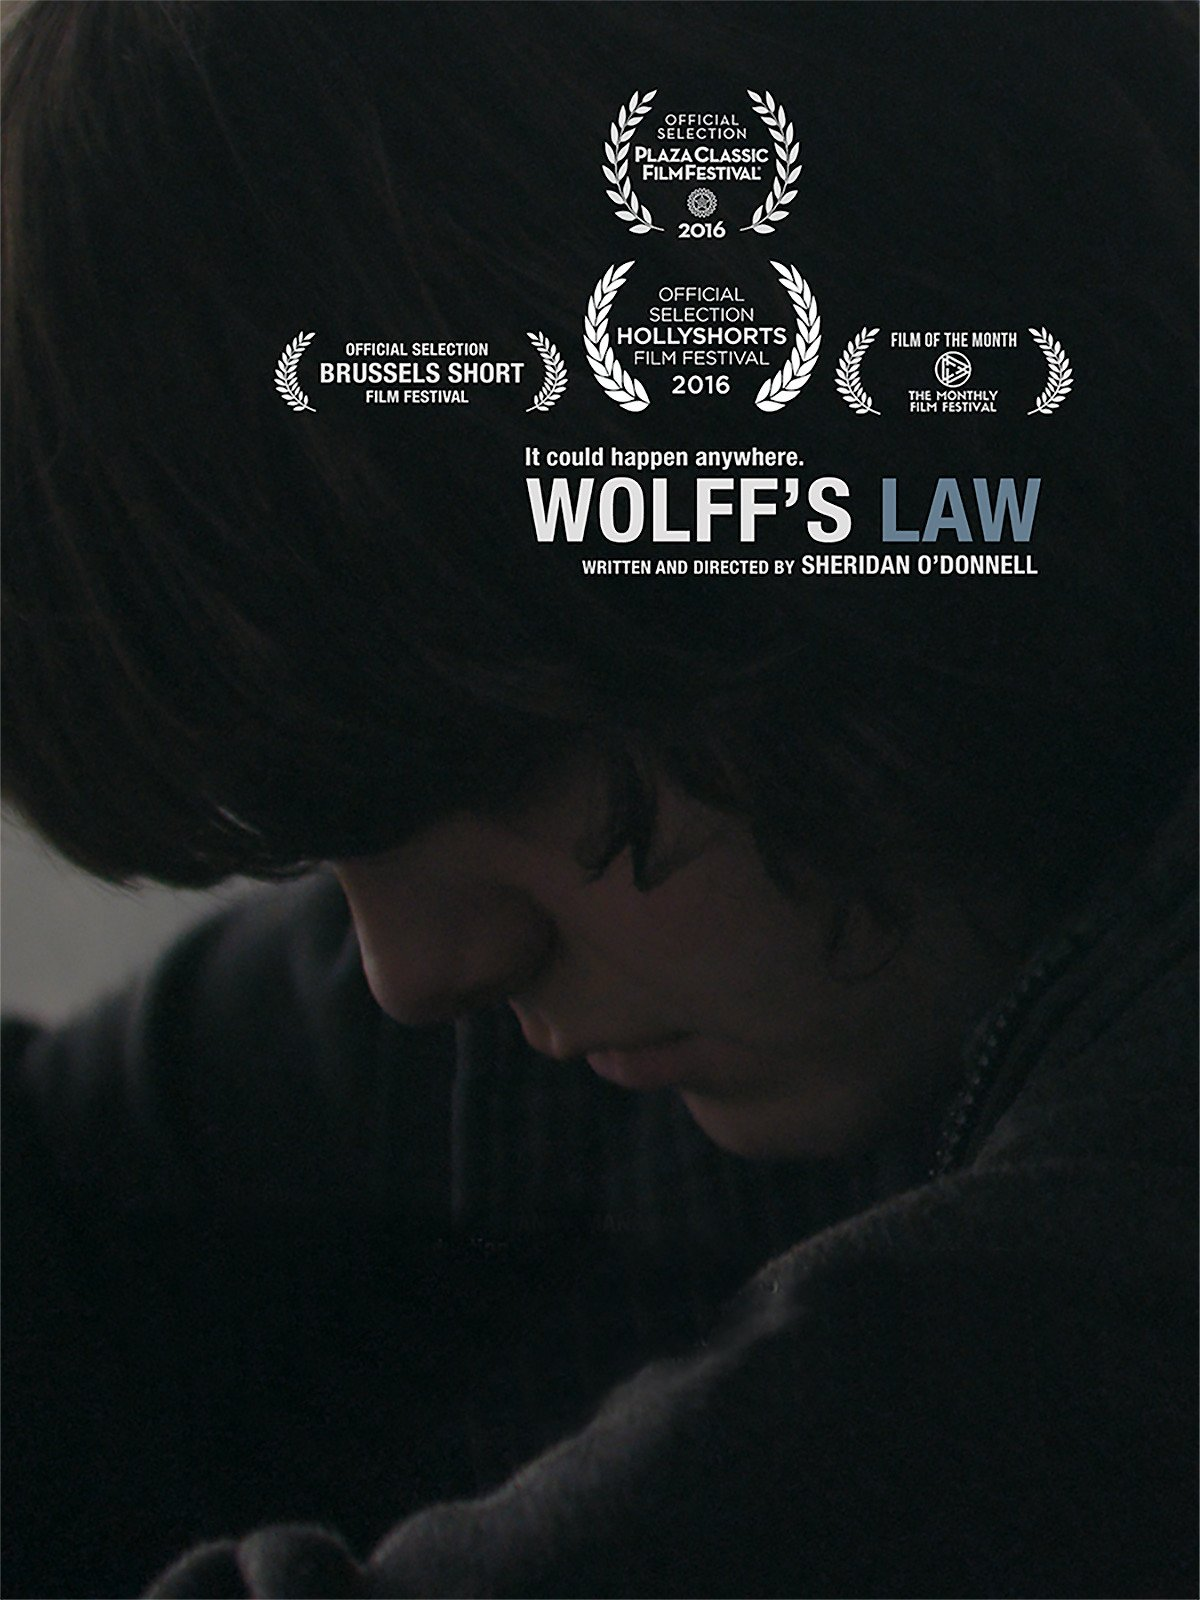 Wolff's Law